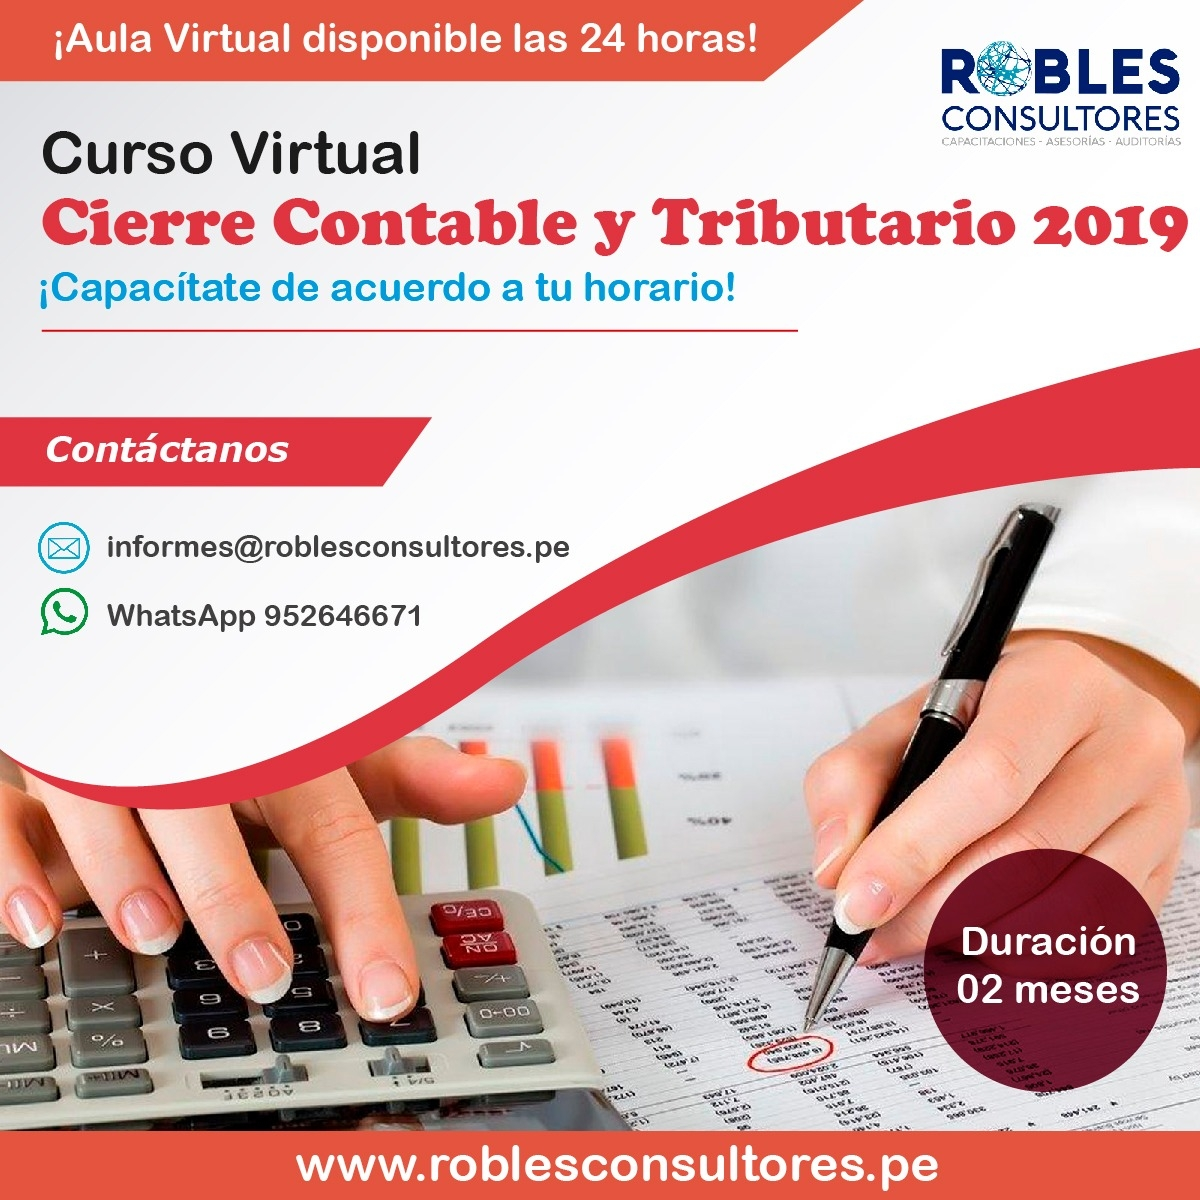 curso-virtual-cierre-contable-y-tributario-2019